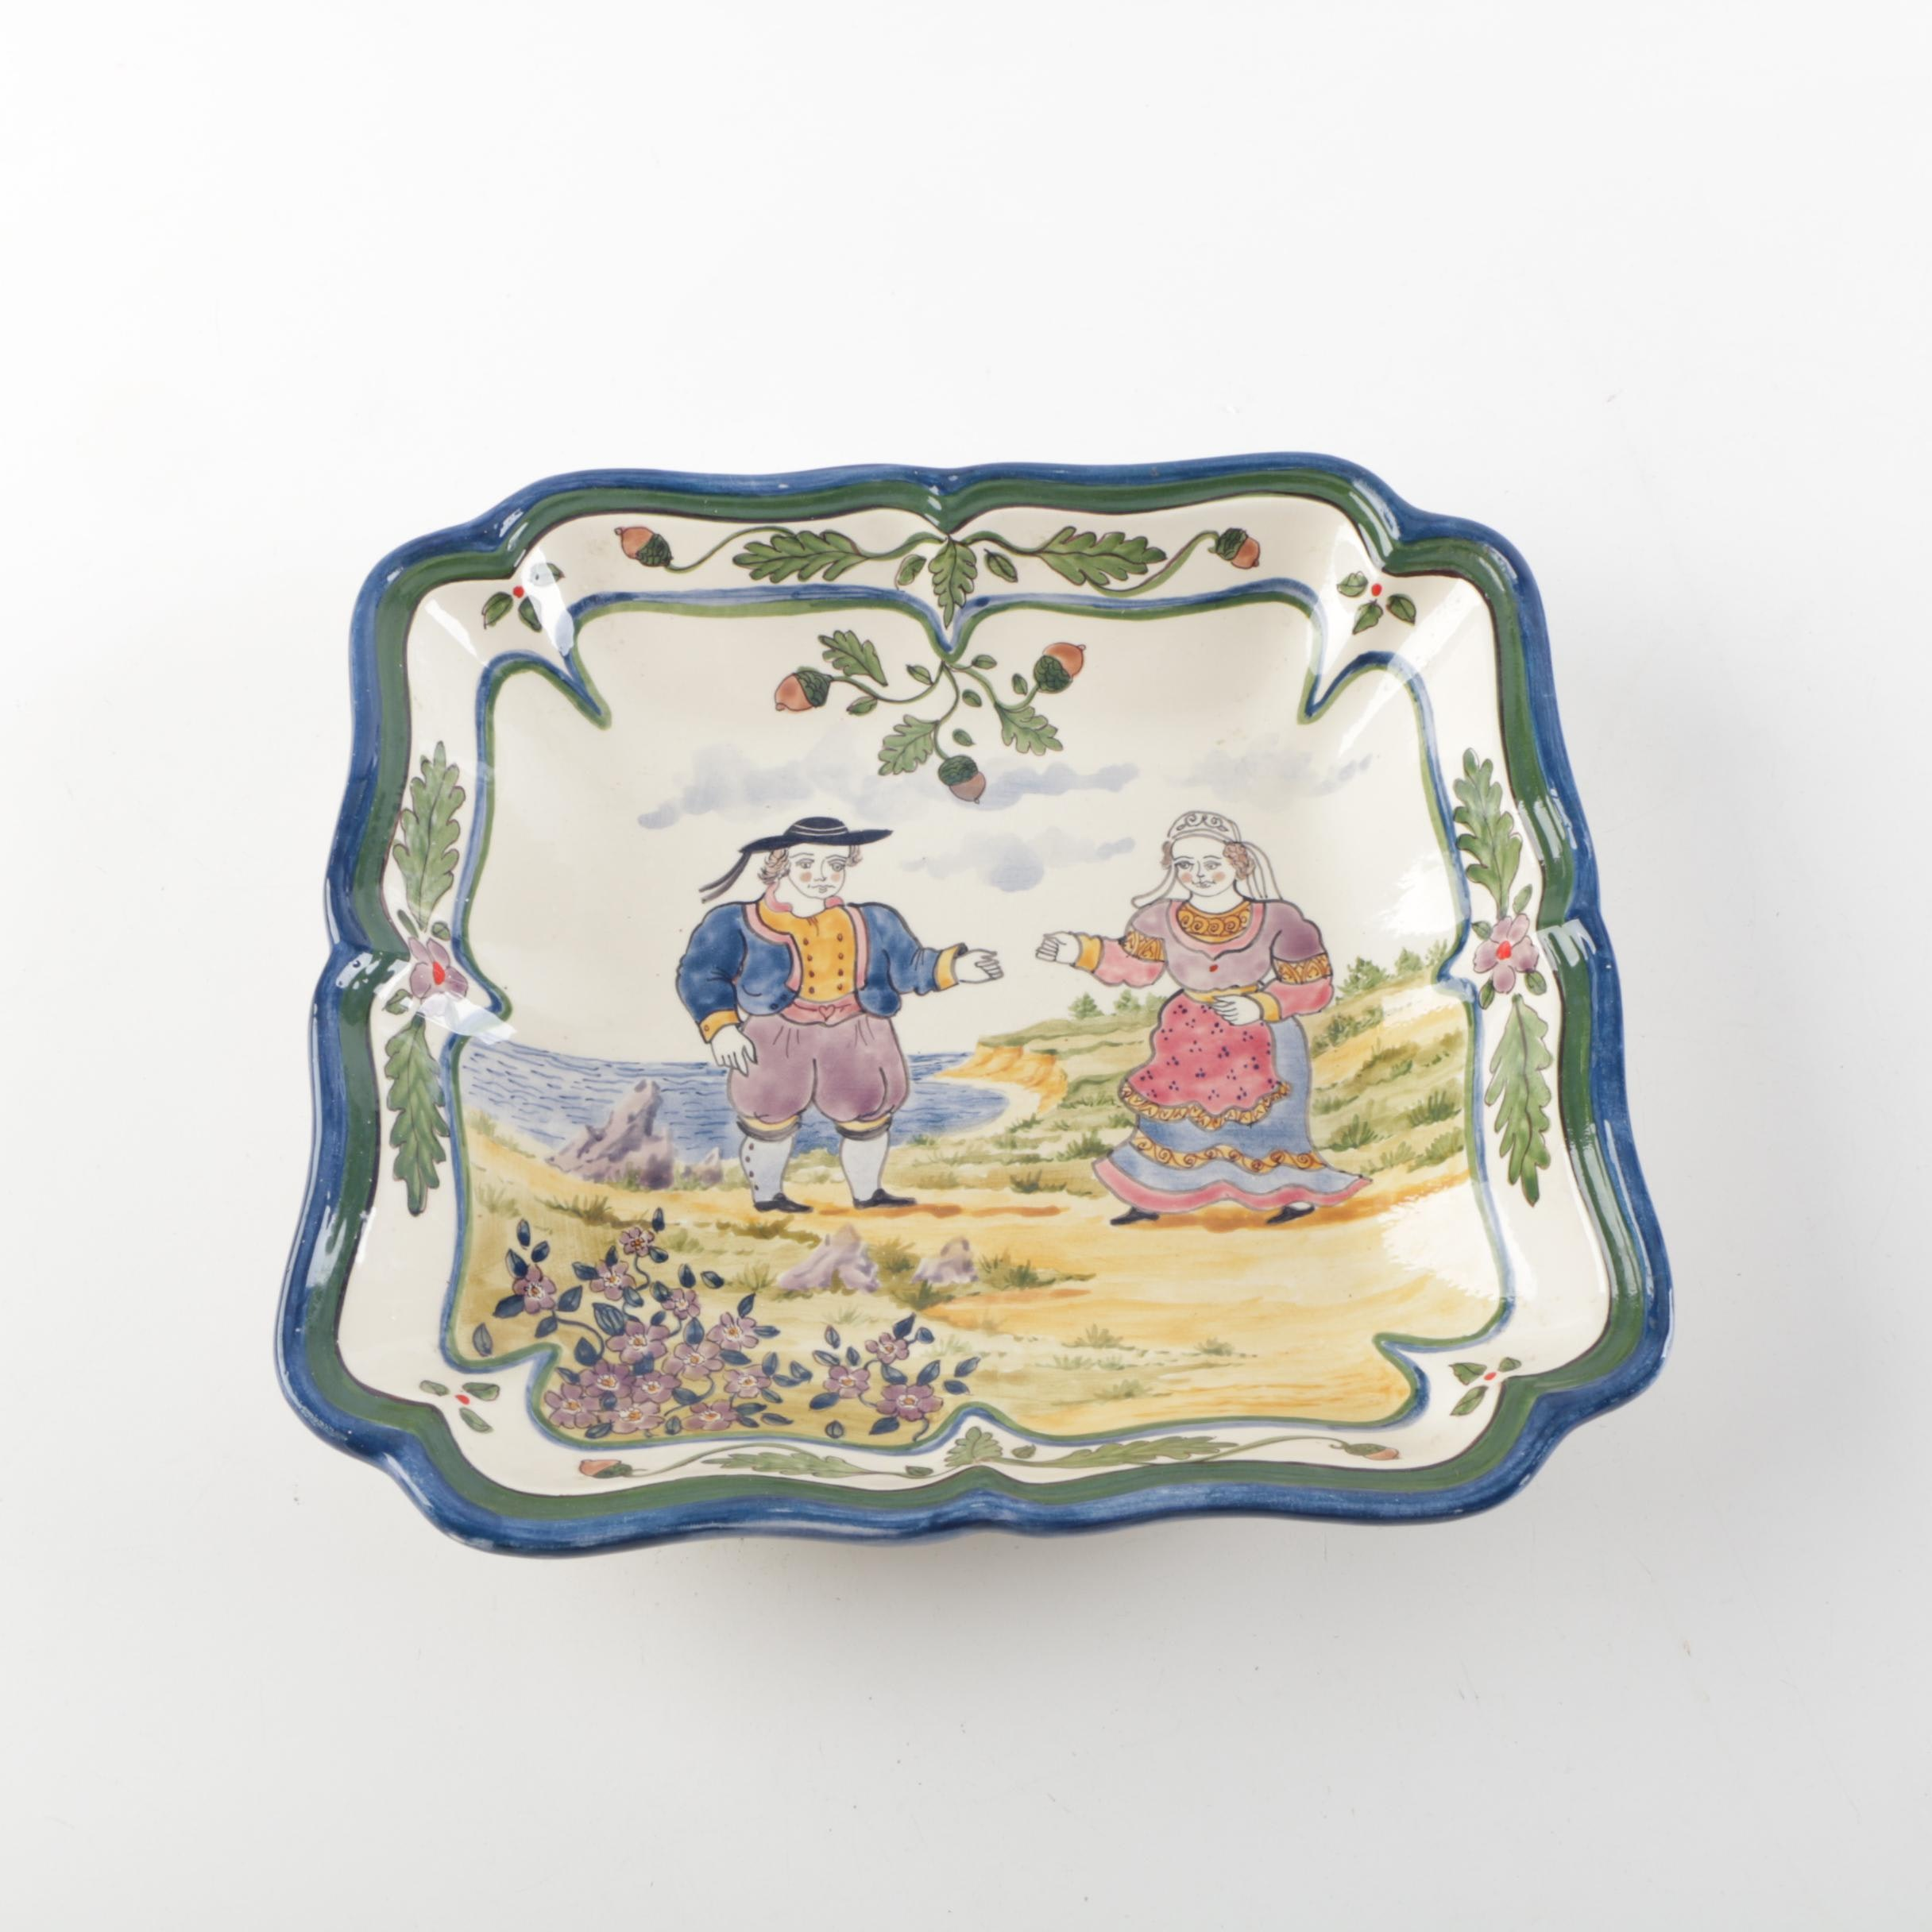 Handpainted French Porcelain Bowl